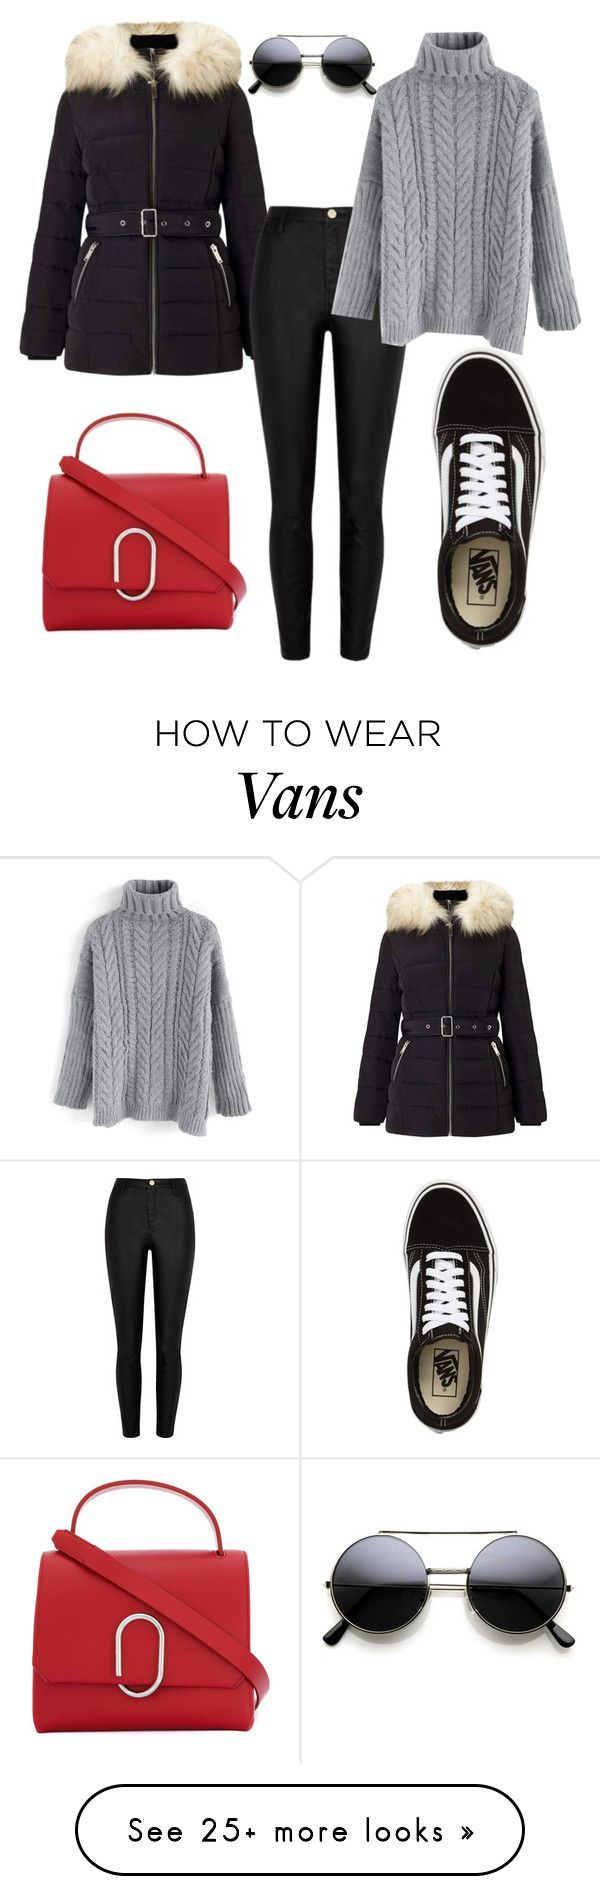 """Untitled #252"" by darnelll on Polyvore featuring Vans, 3.1 Phillip Lim, Miss Selfridge, River Island and Chicwish"